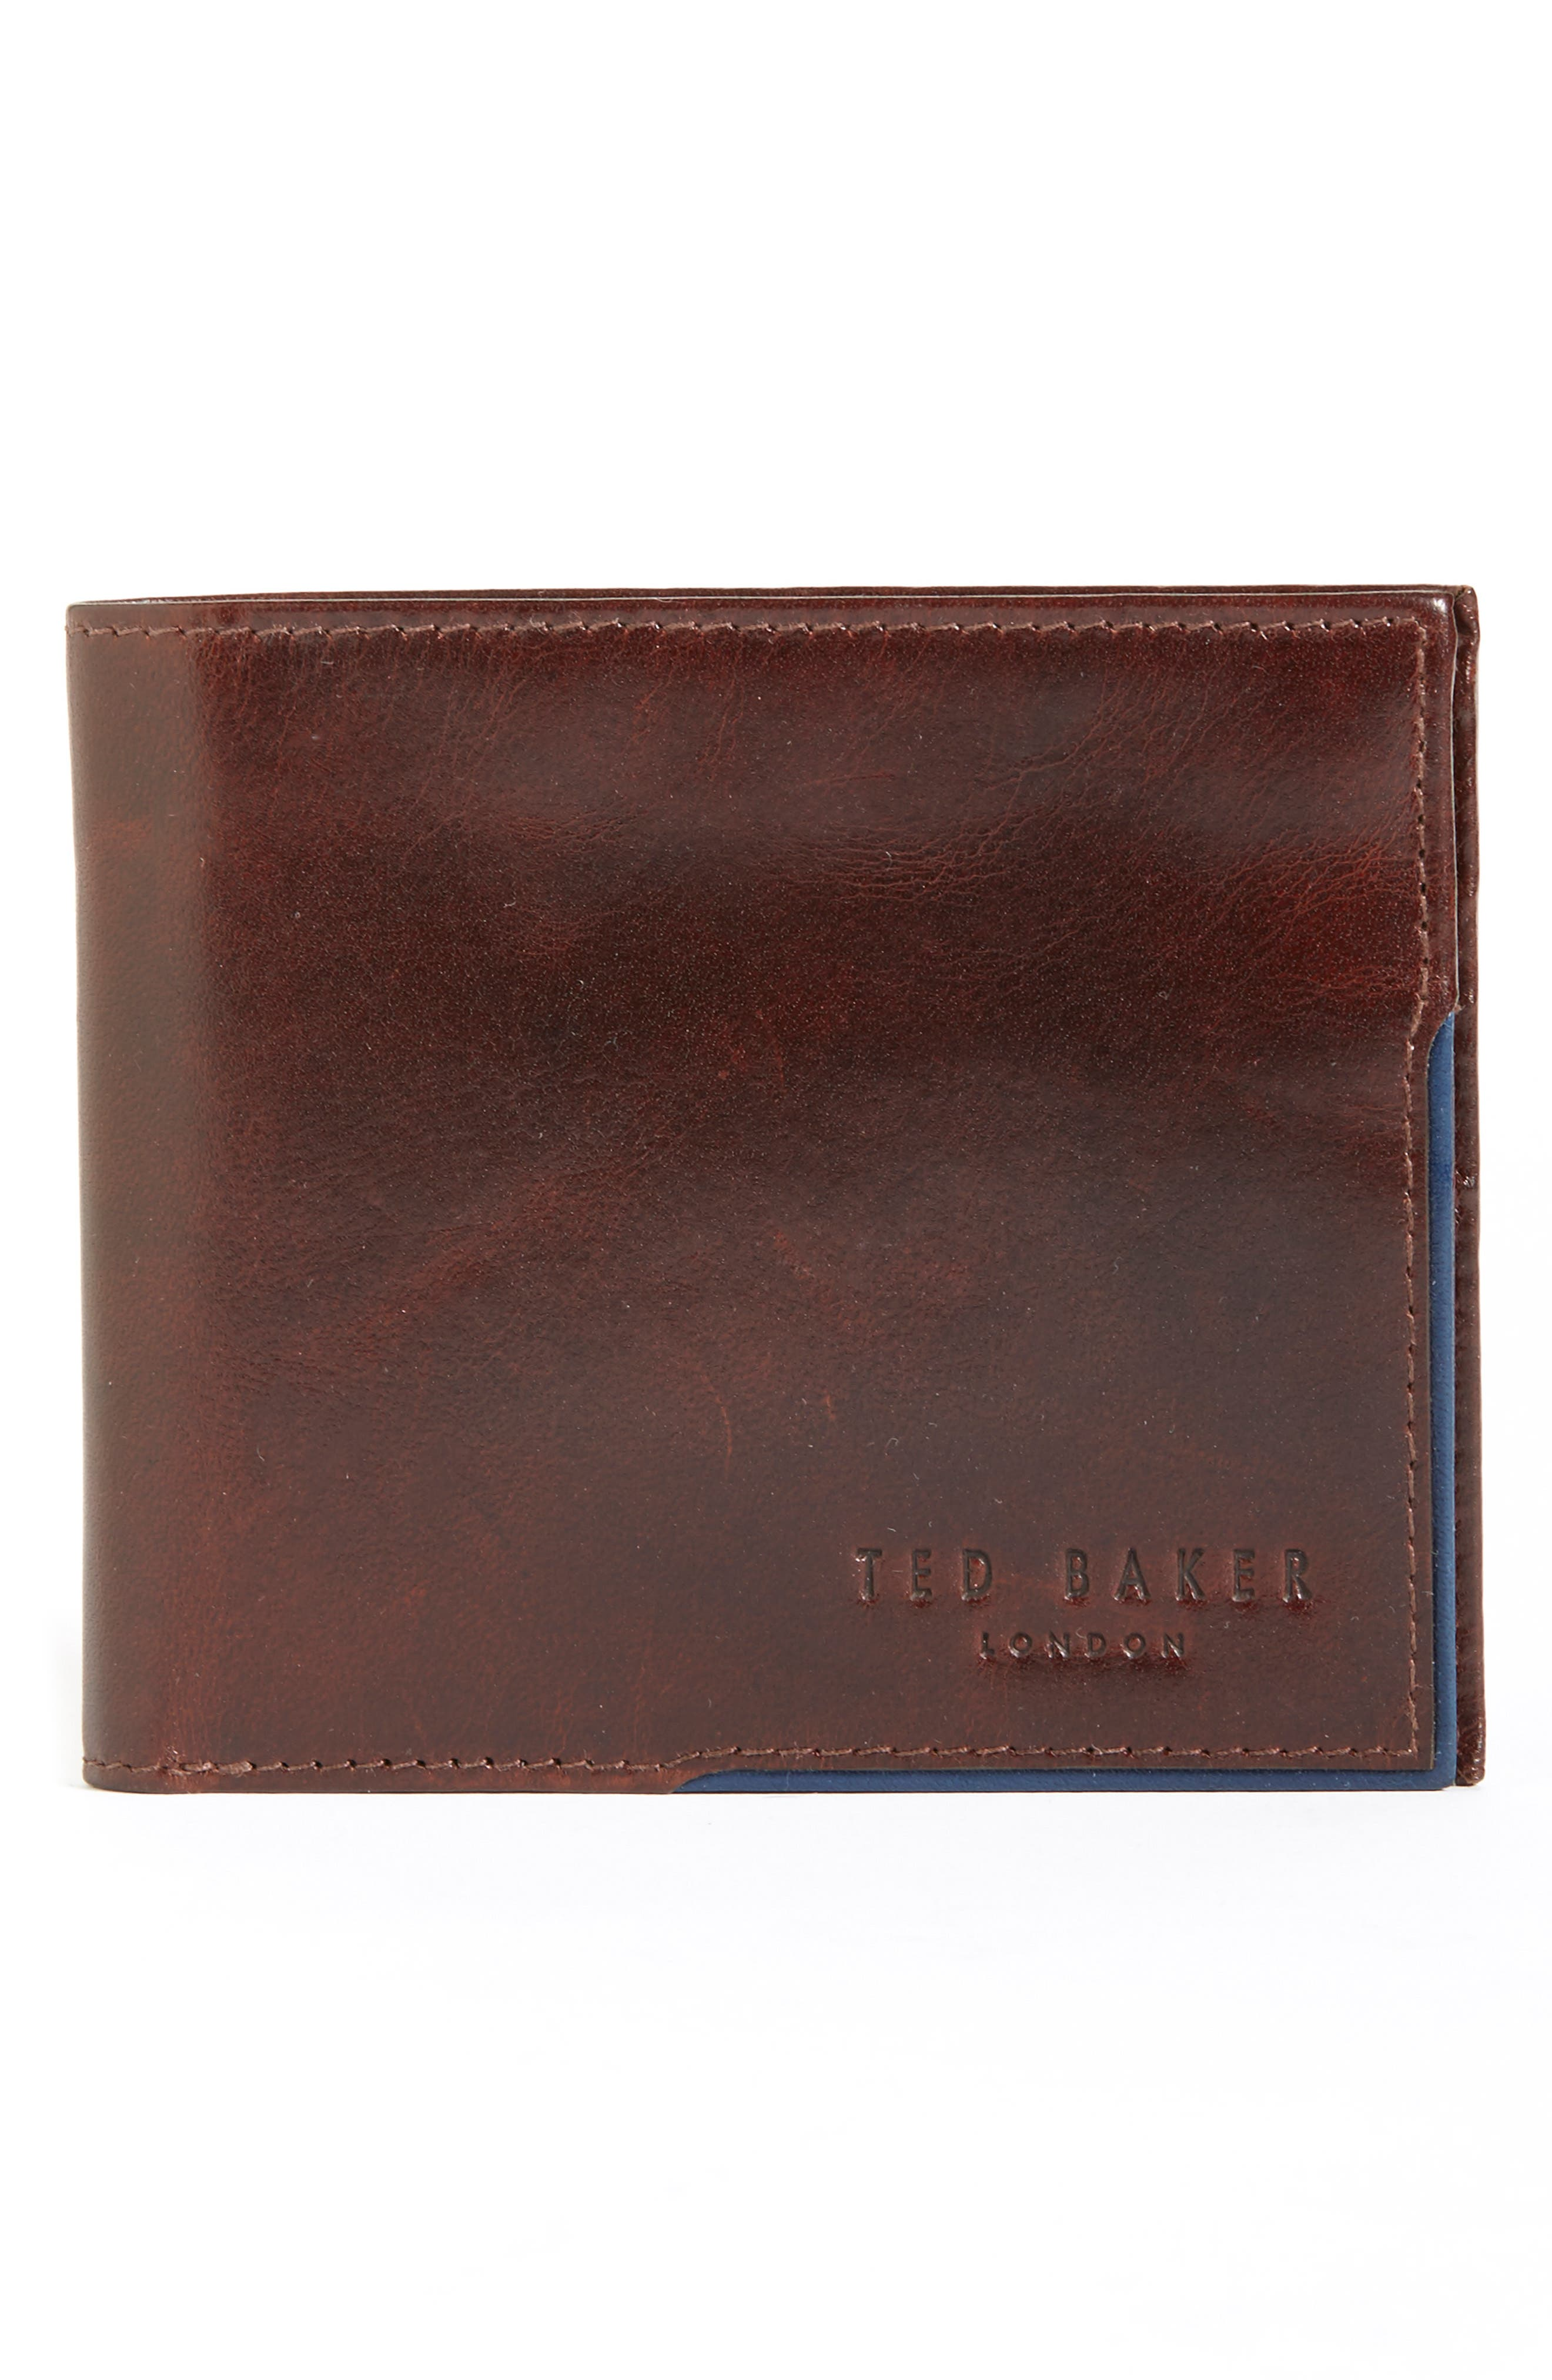 Main Image - Ted Baker London Carouse Leather Wallet